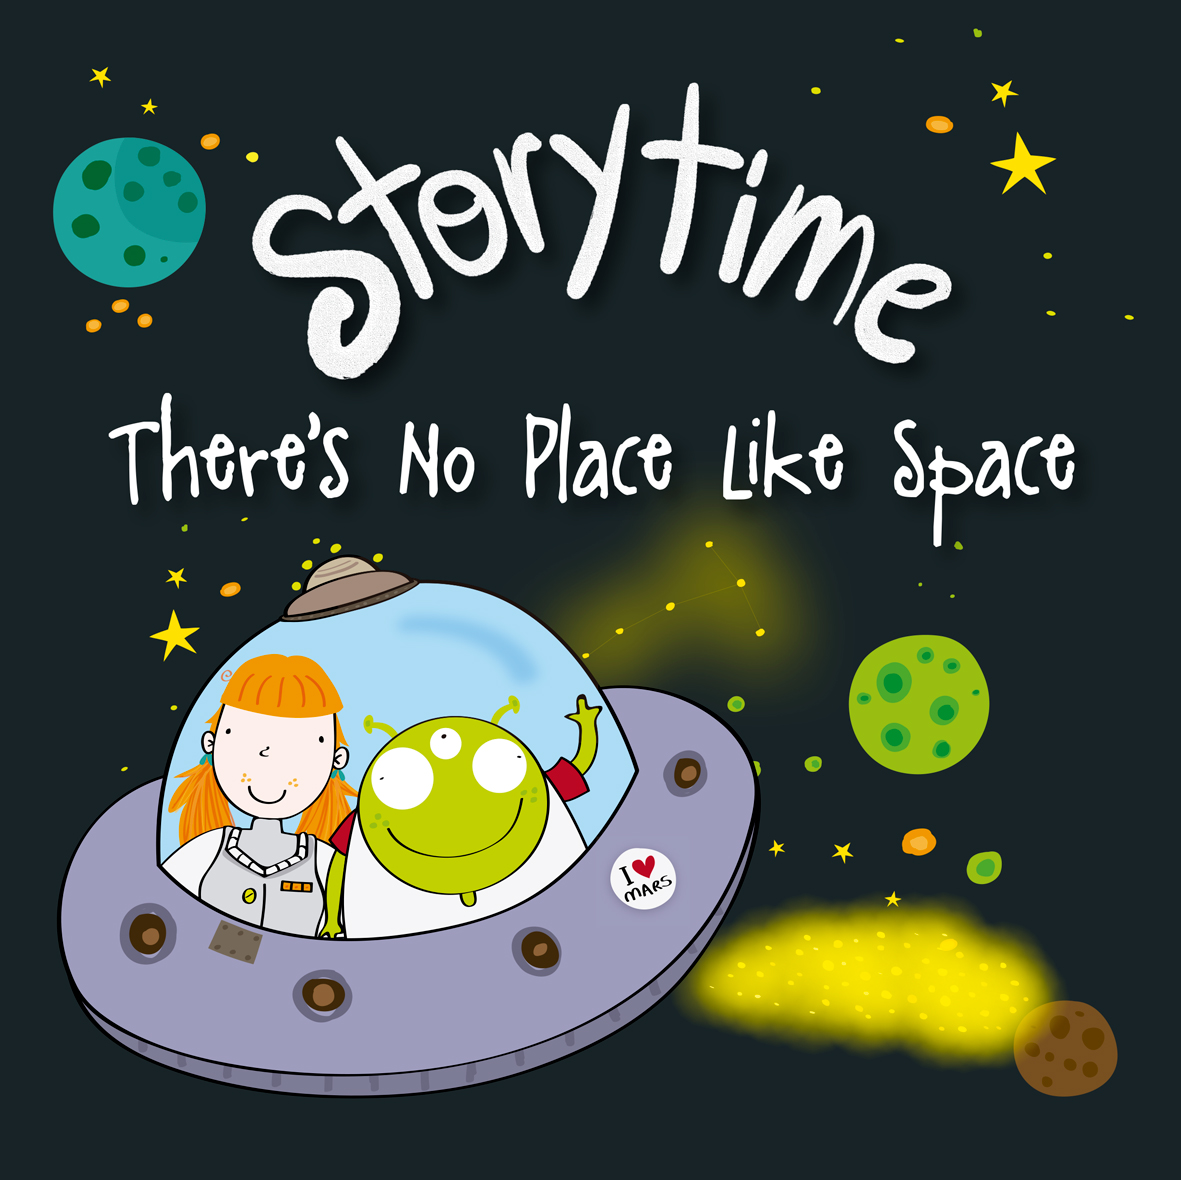 THERE´S NO PLACE LIKE SPACE